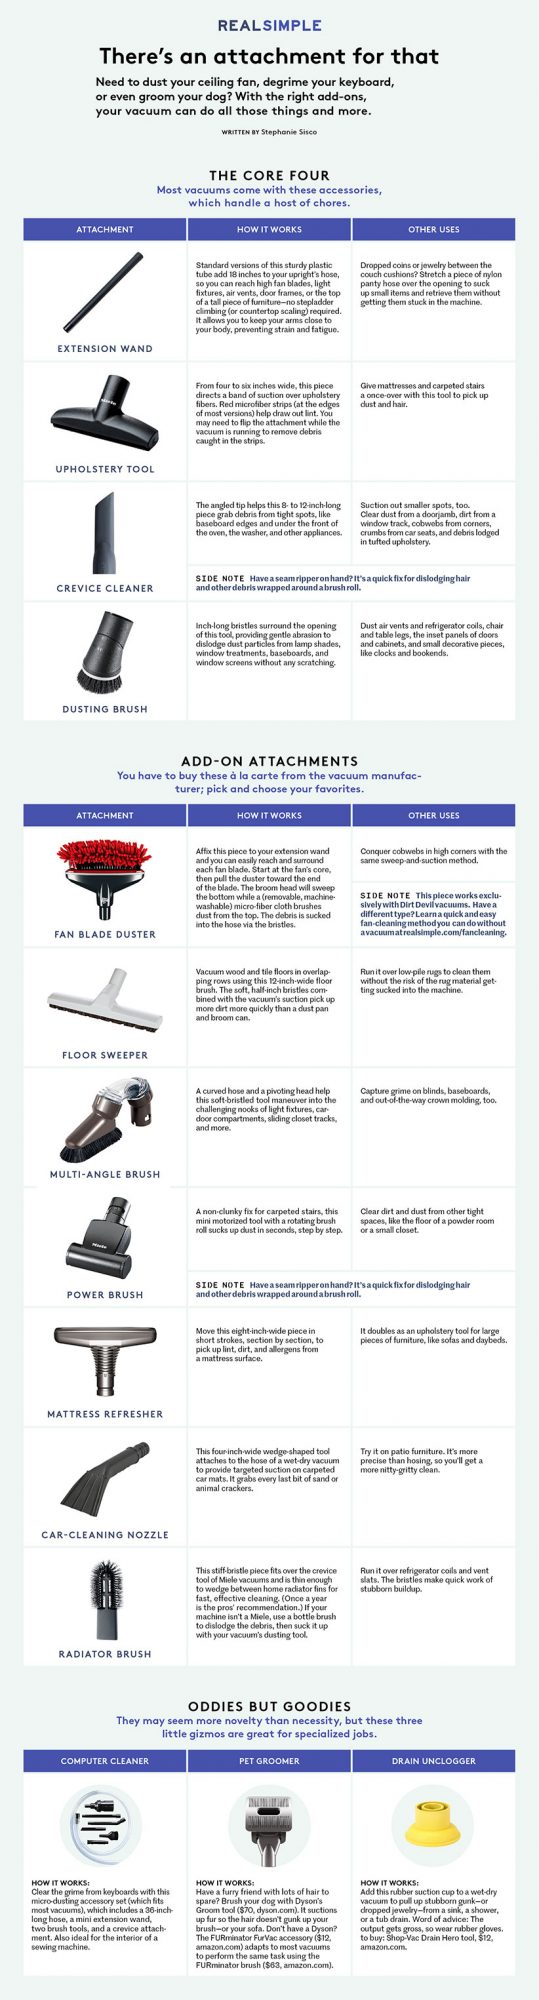 Vacuum Attachments Guide: Infographic with Names, Pictures, and Uses